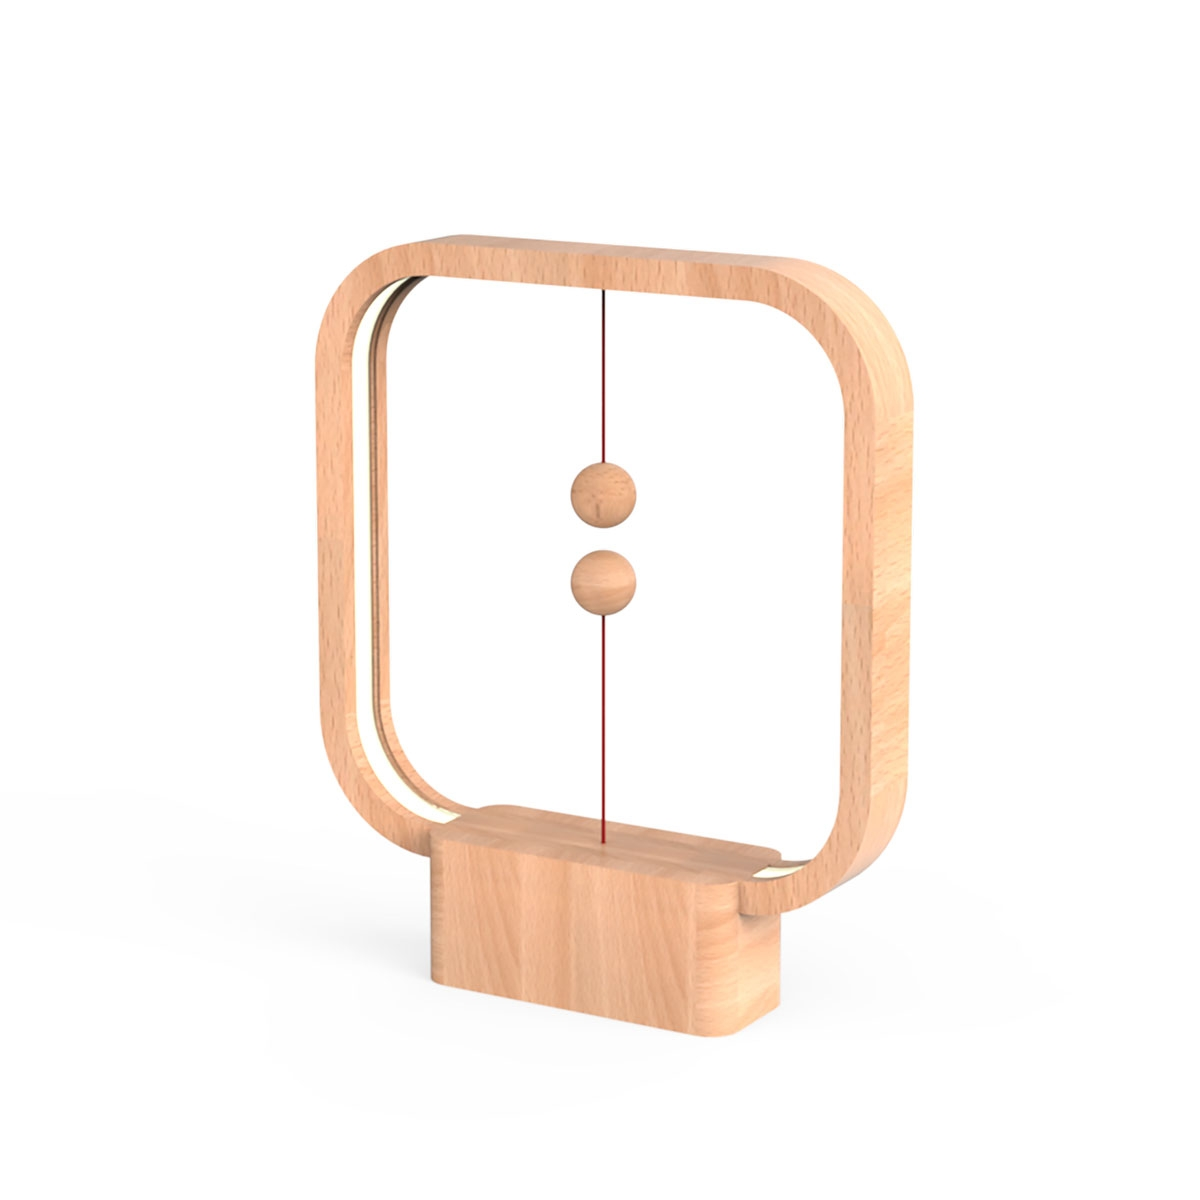 Allocacoc Heng Balance Lamp - Switch in Mid-Air - Square - Light Wood (47082)